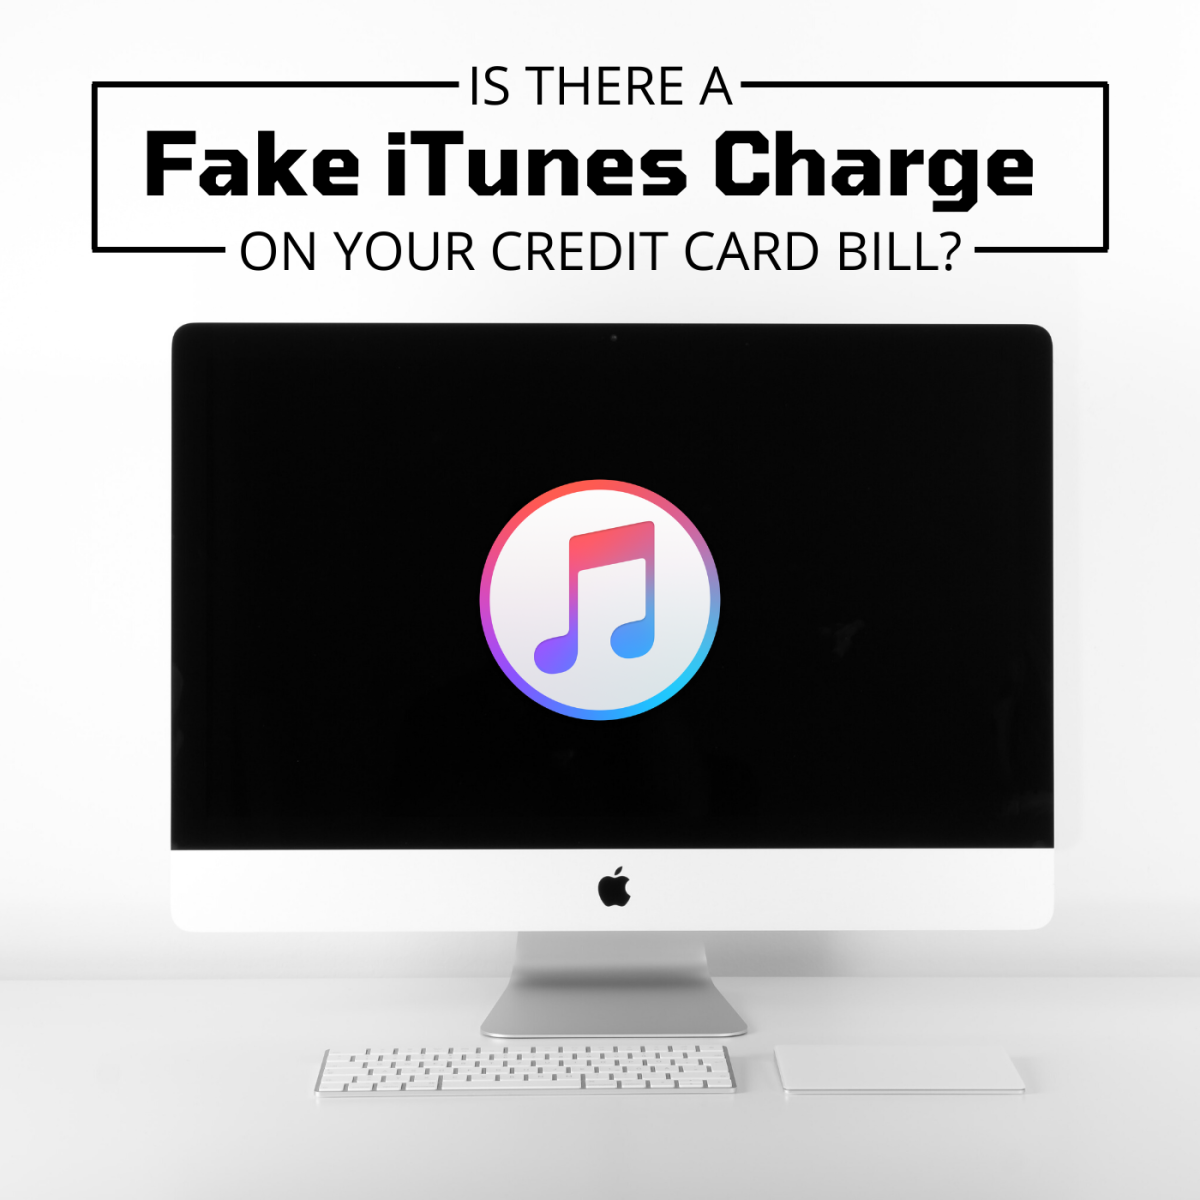 "If you see a charge from ""APL*ITUNES.COM/BILL 866-712-7753 CA"" on your credit card bill, you've been scammed."